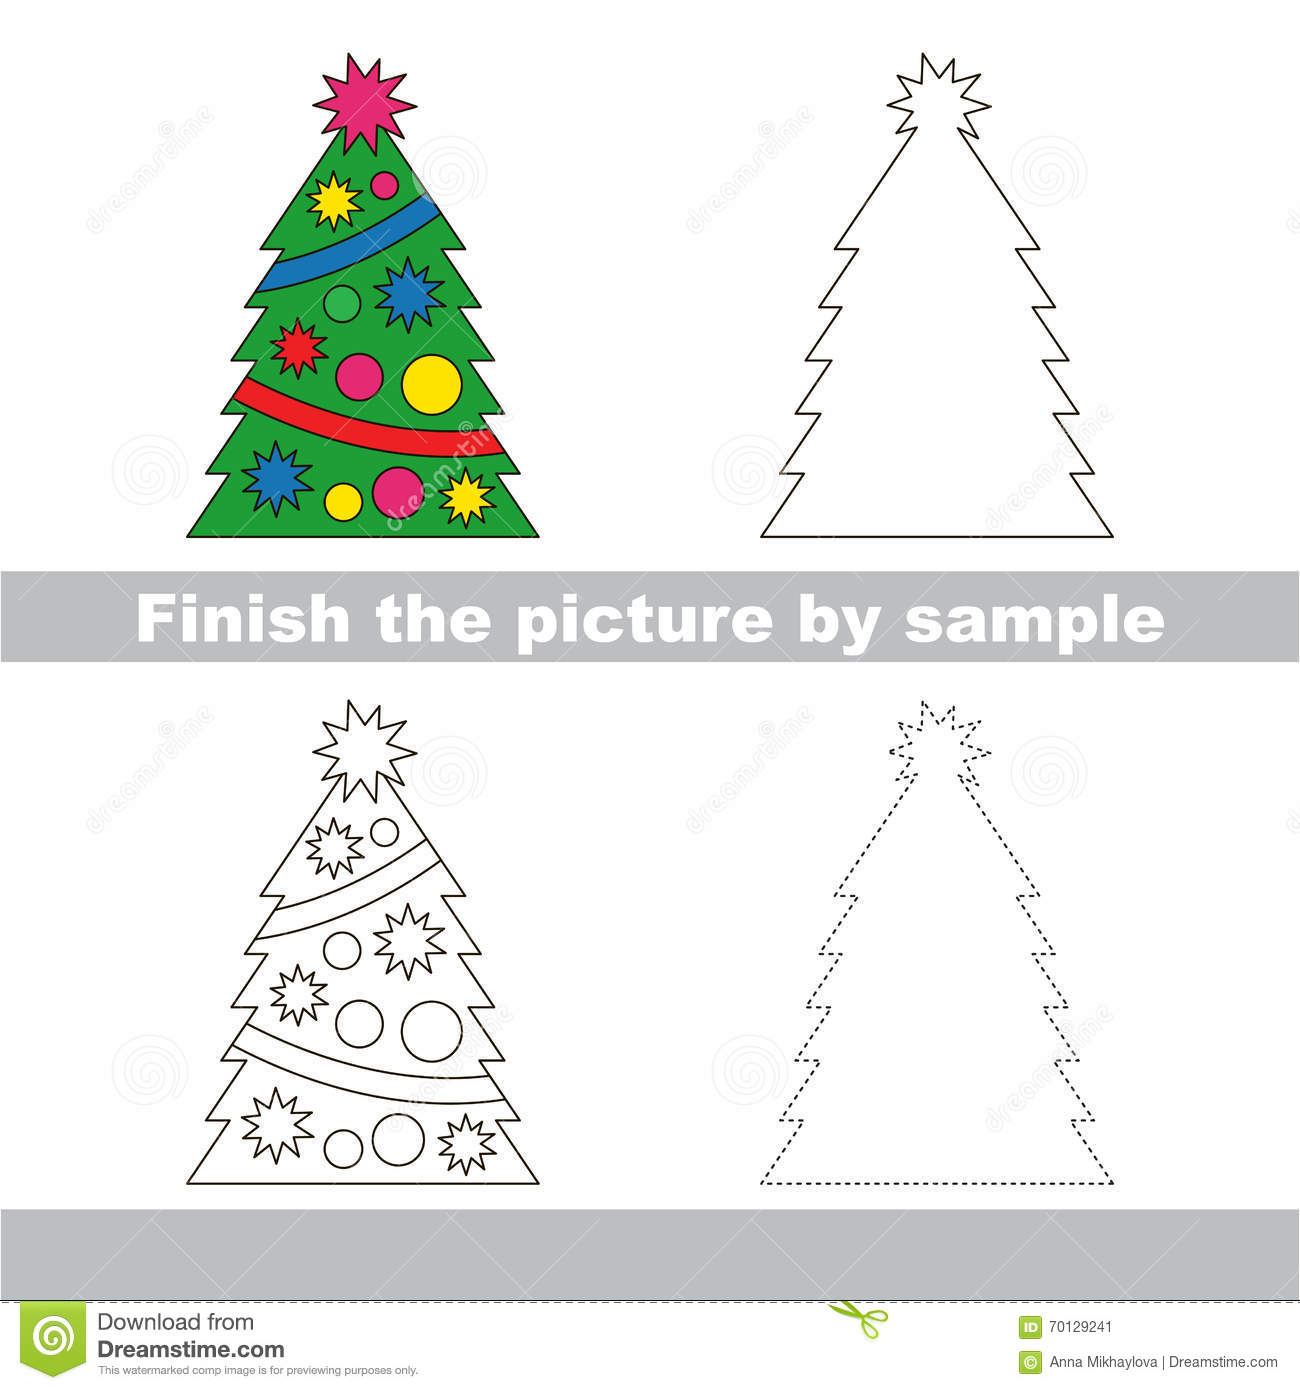 New year tree drawing merry christmas and happy new year for Cute christmas tree drawing